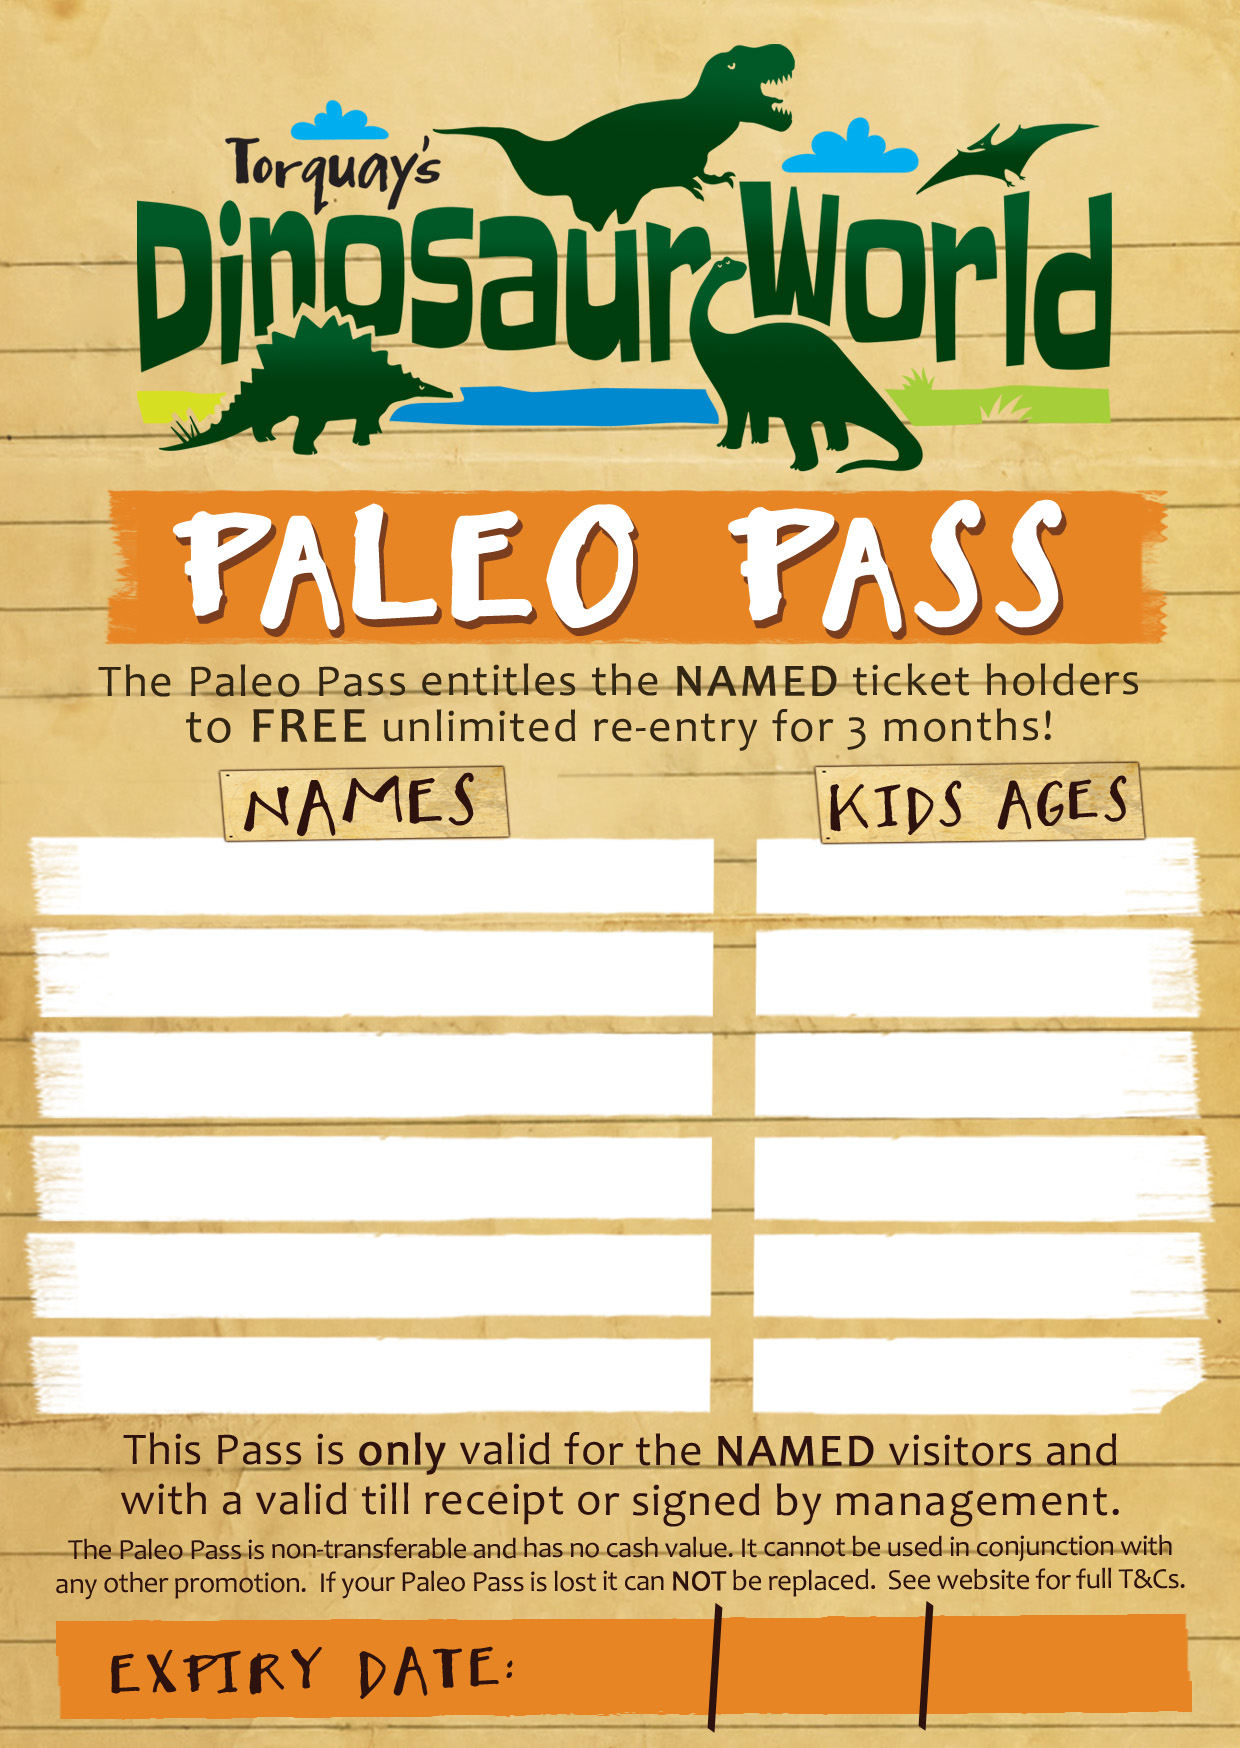 Paleo Pass - Free Re-Entry